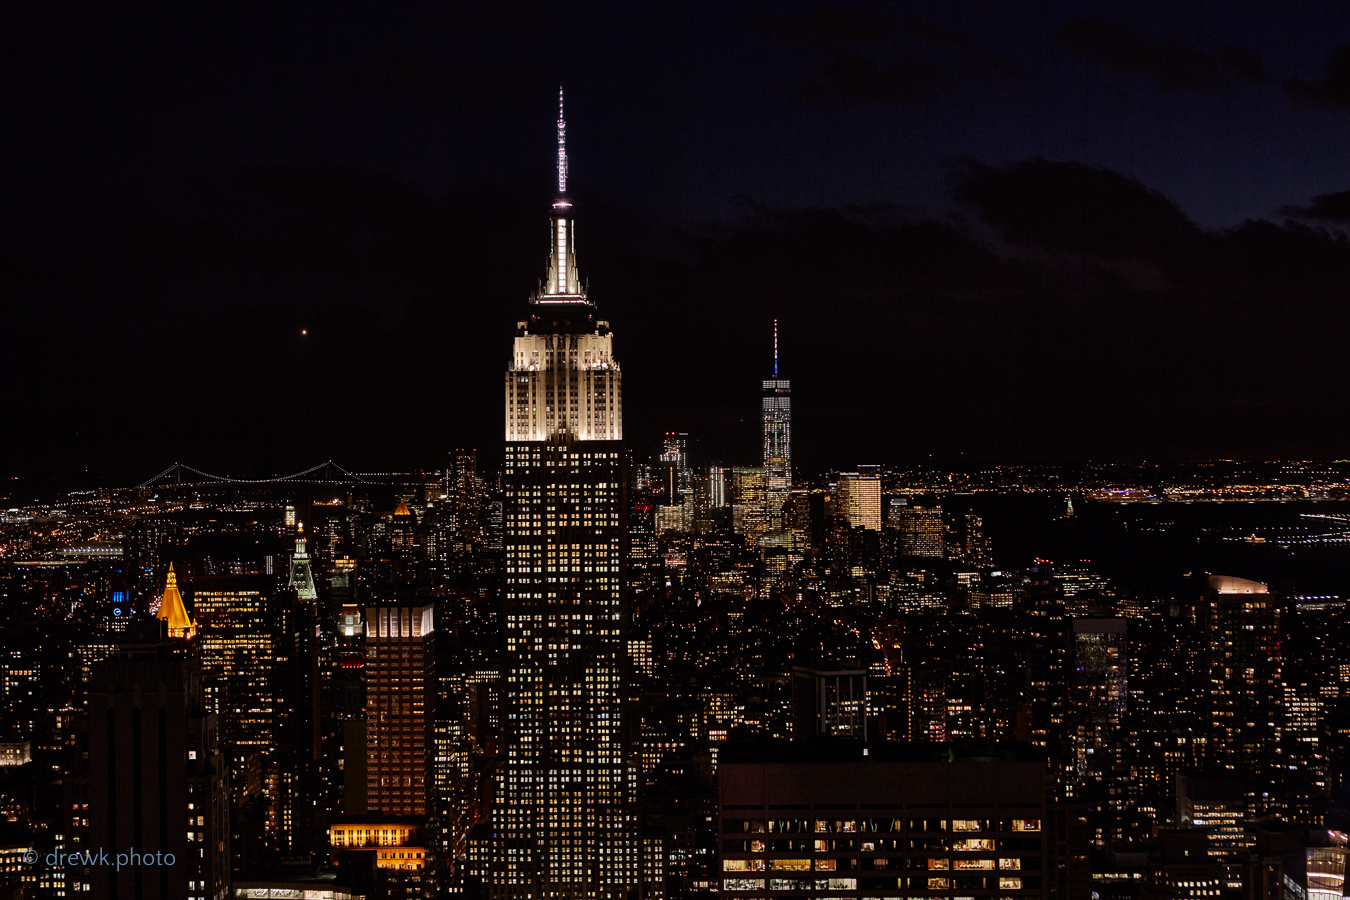 <alt>Empire State building, NYC</alt><br/>